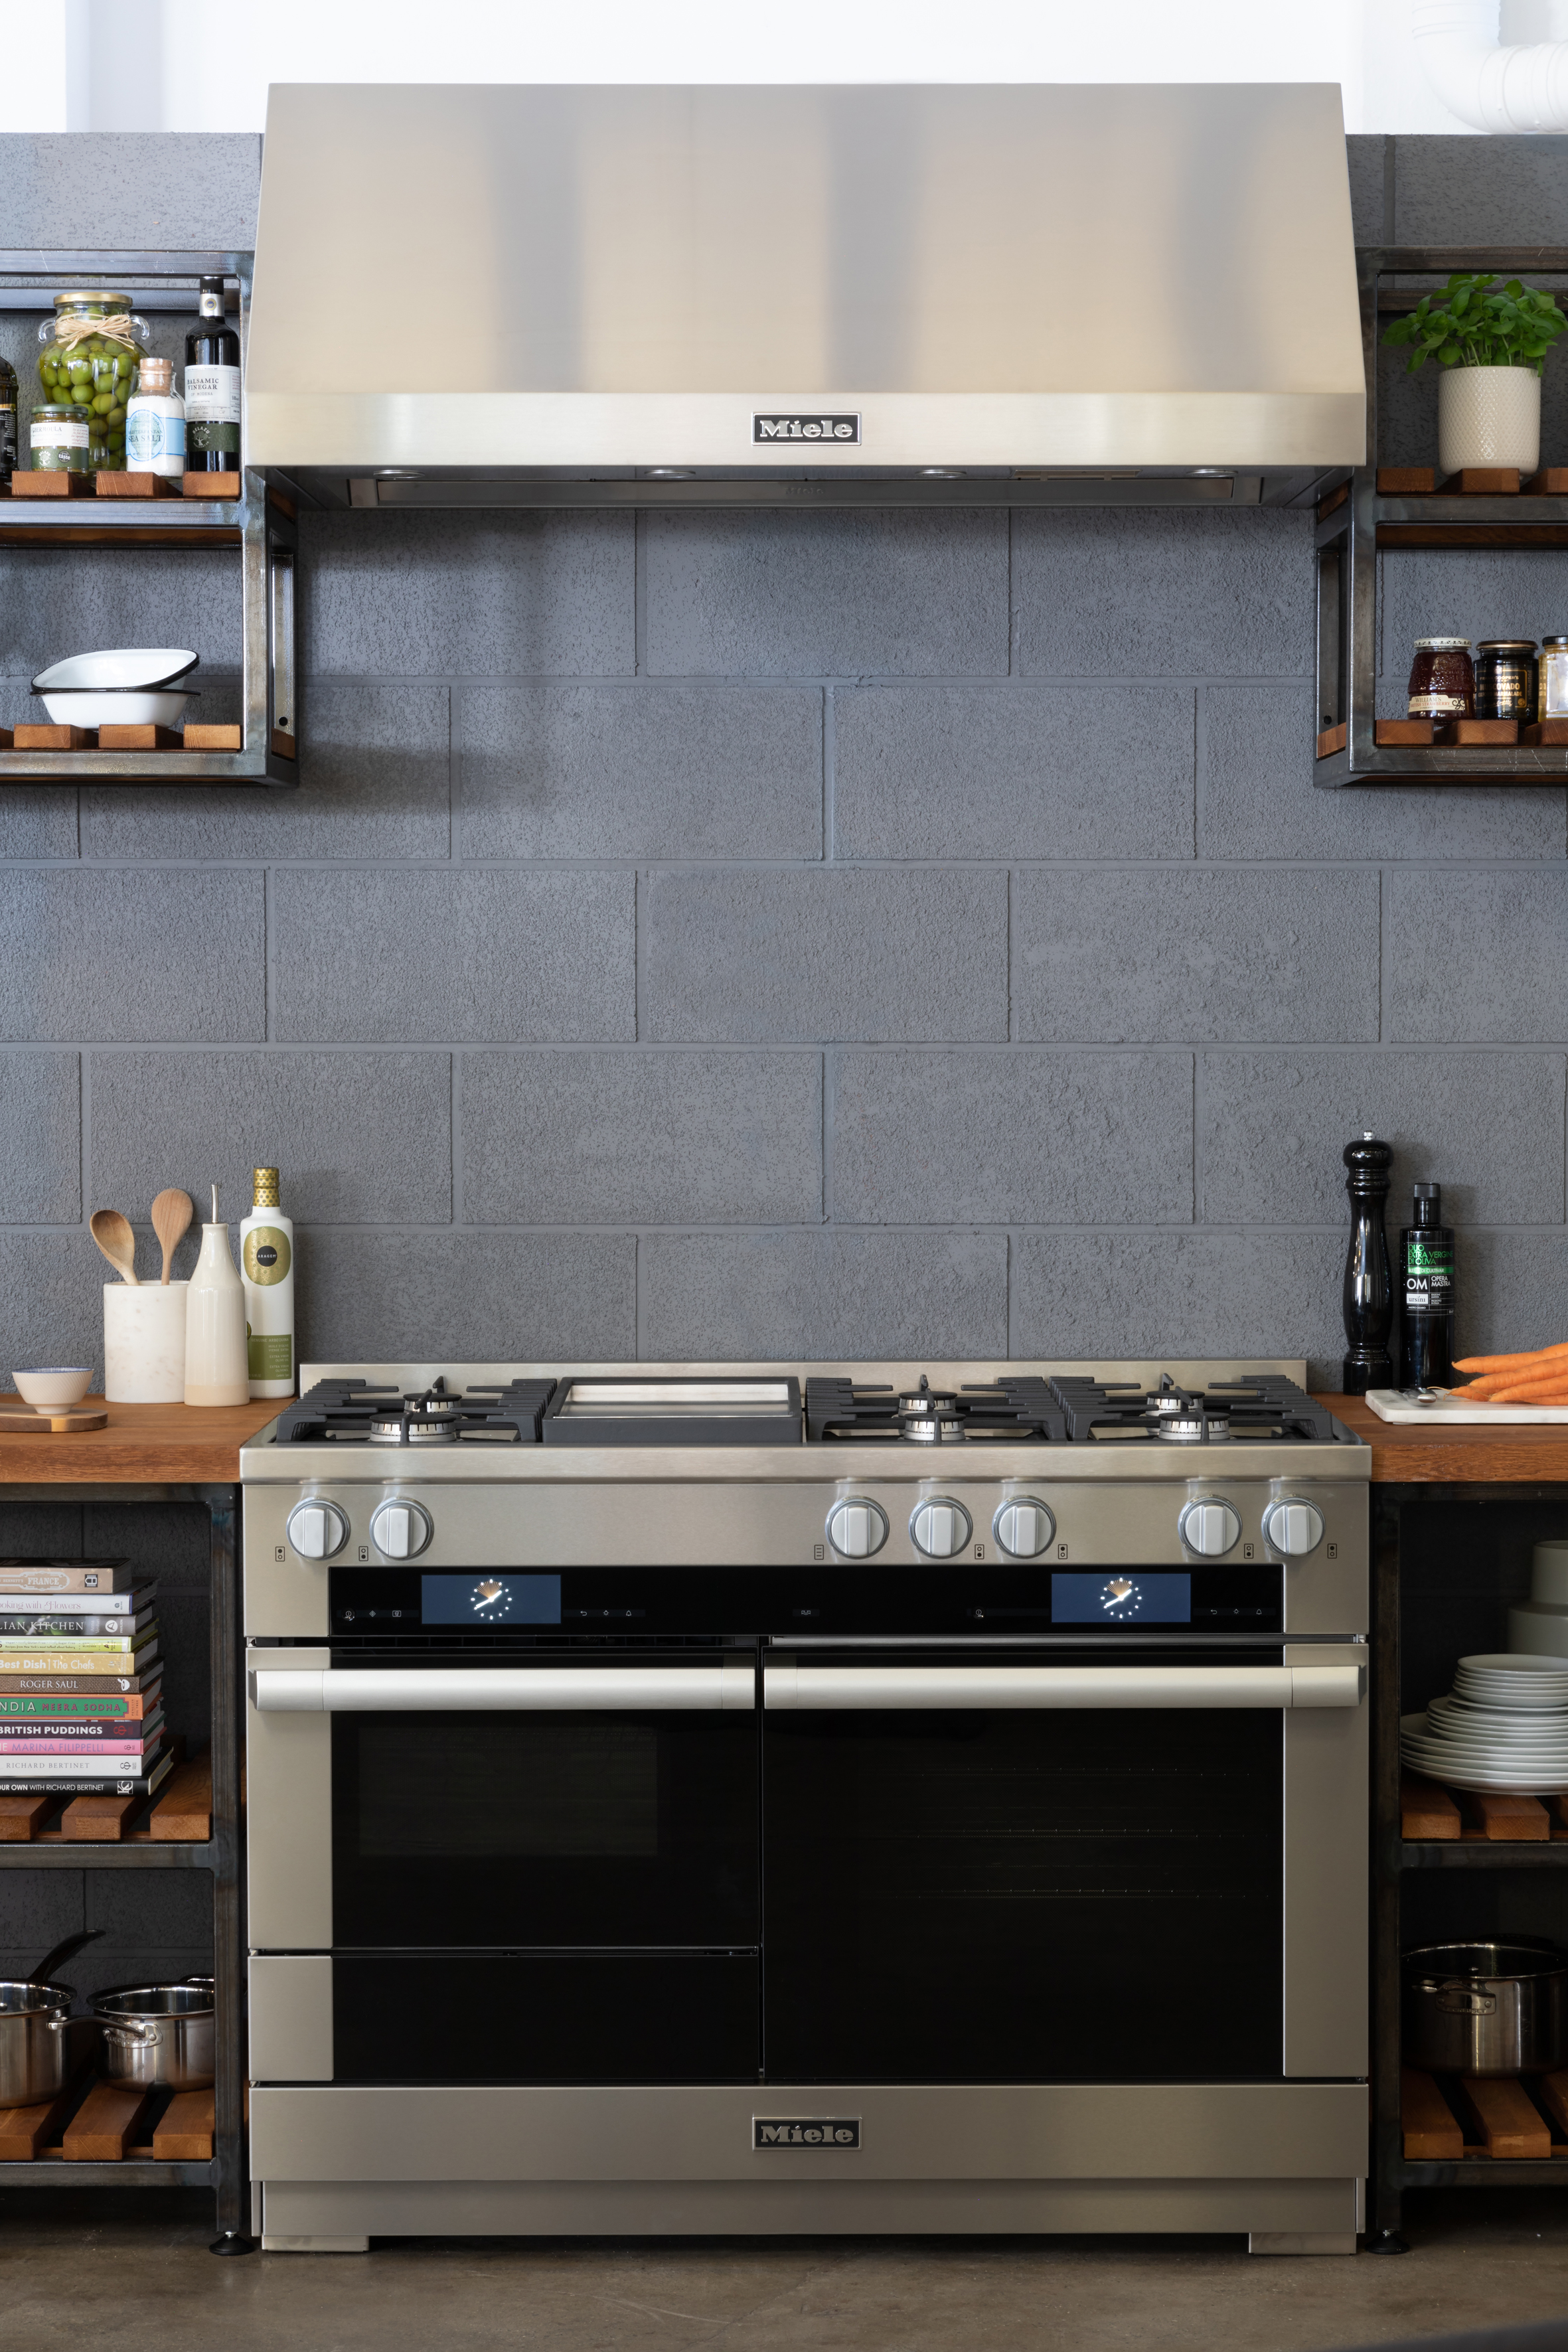 Divertimenti Range Cooker